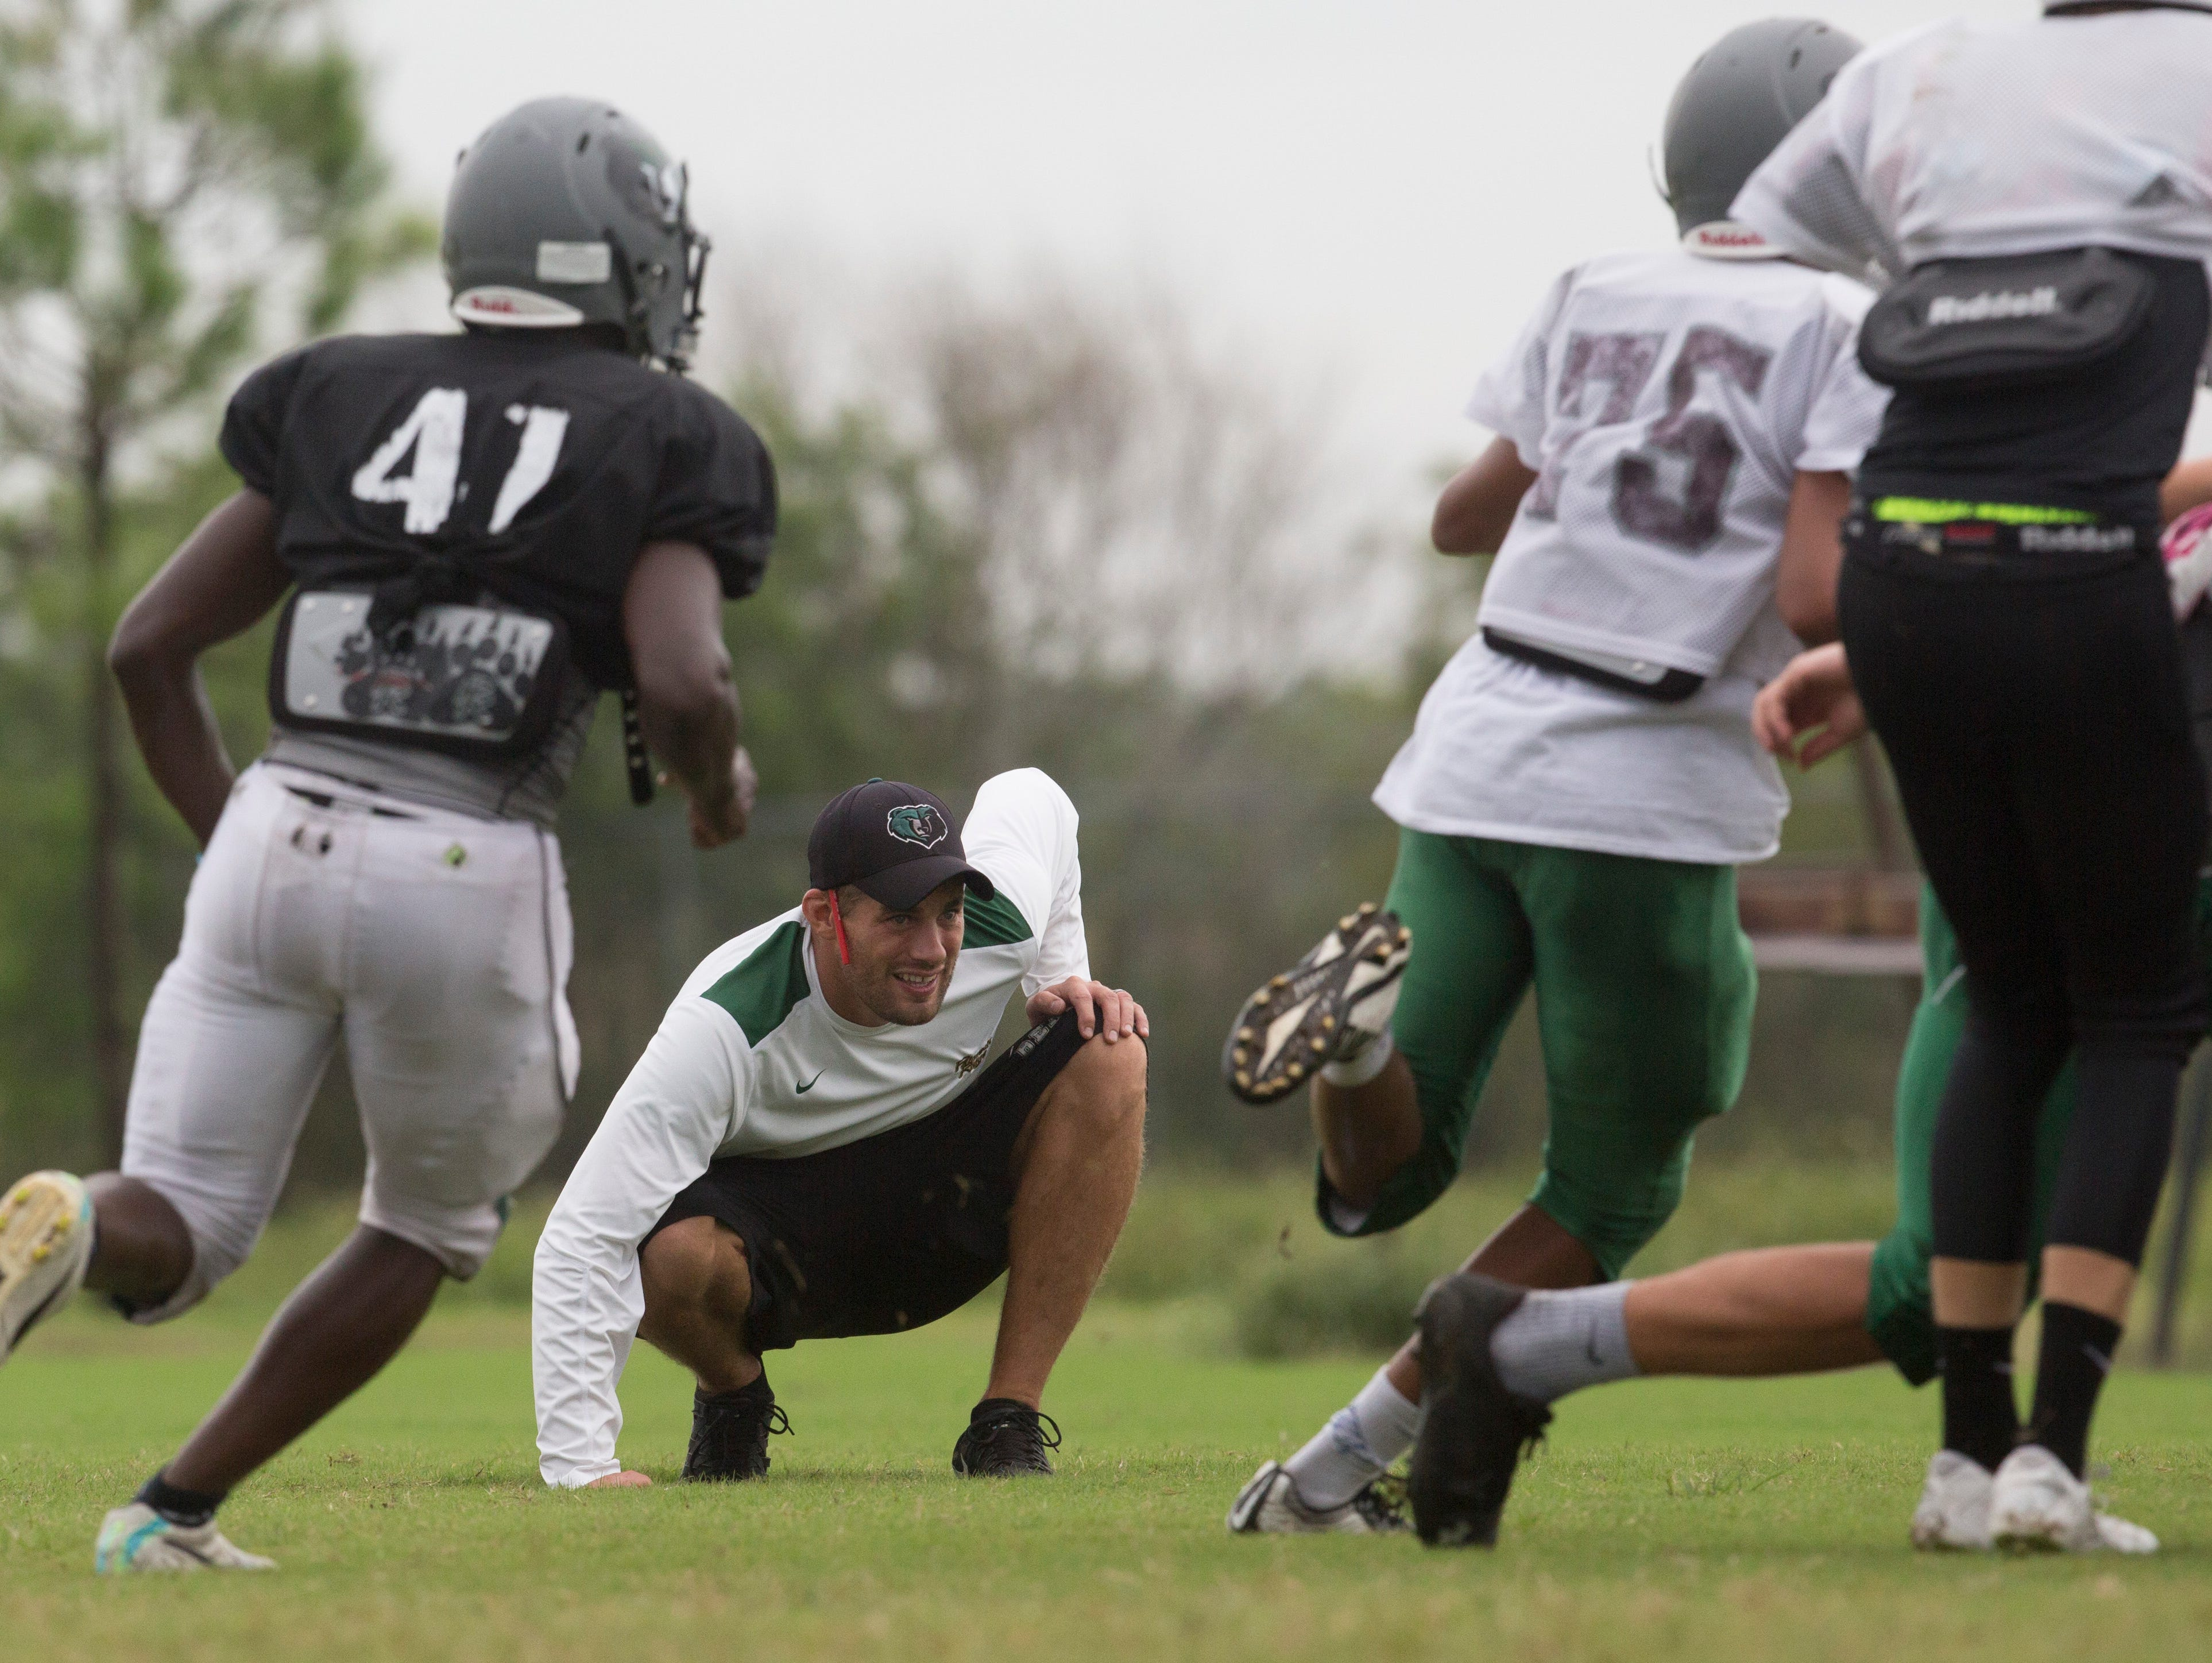 Palmetto Ridge High School first-year football coach Chris Toukonen coaches his players during a Tuesday afternoon practice. The Bears are 4-0 this year.